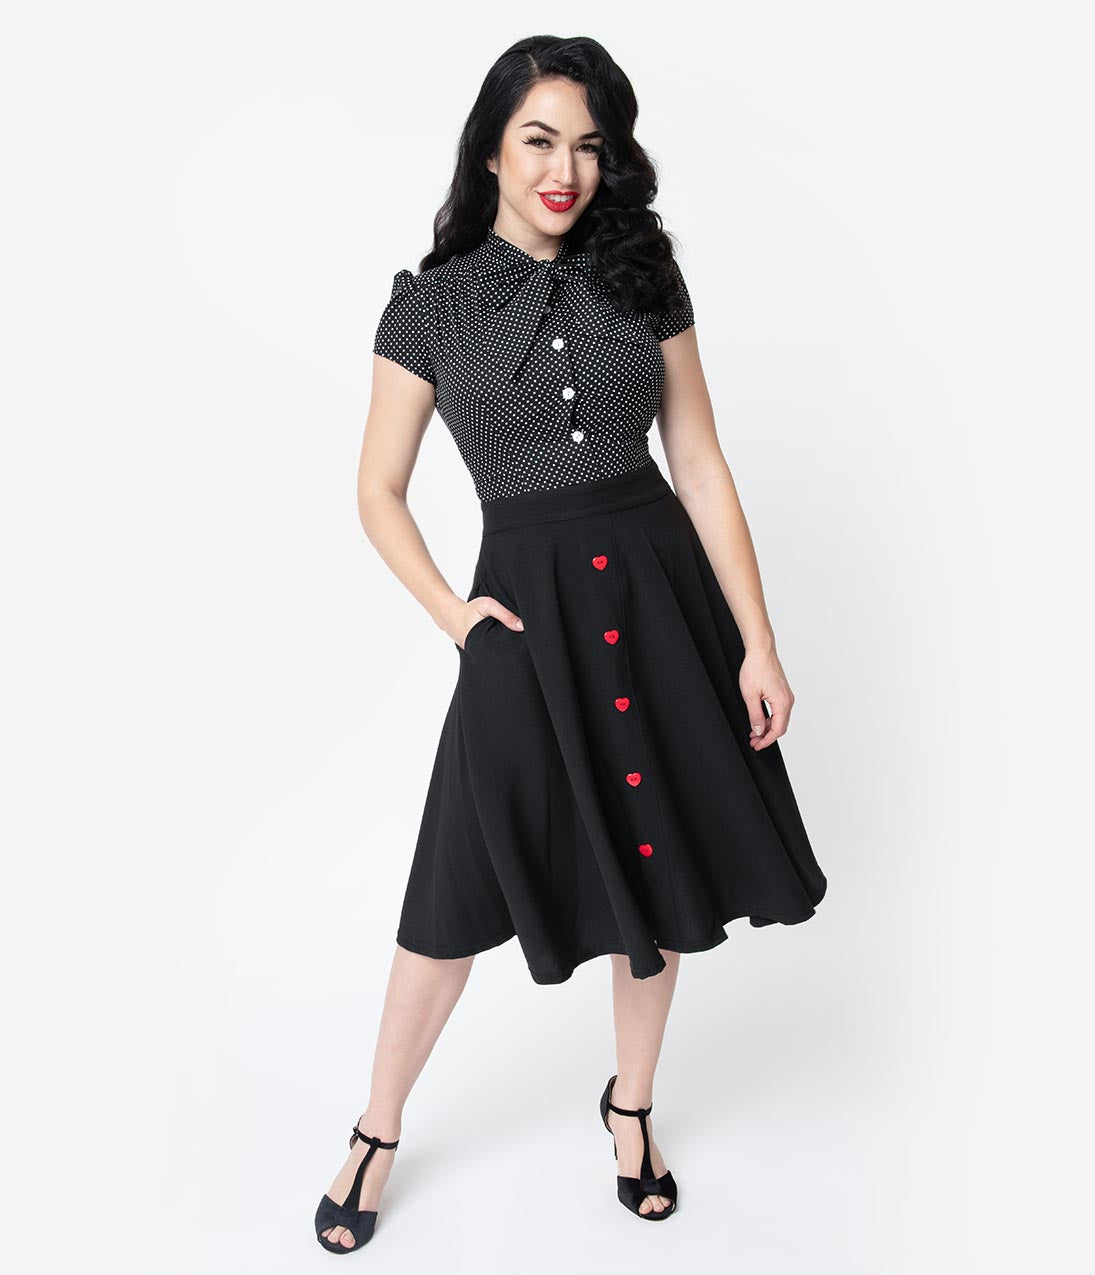 Vintage Christmas Dress | Party Dresses | Night Out Outfits Steady Black  Red Button Be Still My Heart High Waisted Thrills Skirt $52.00 AT vintagedancer.com